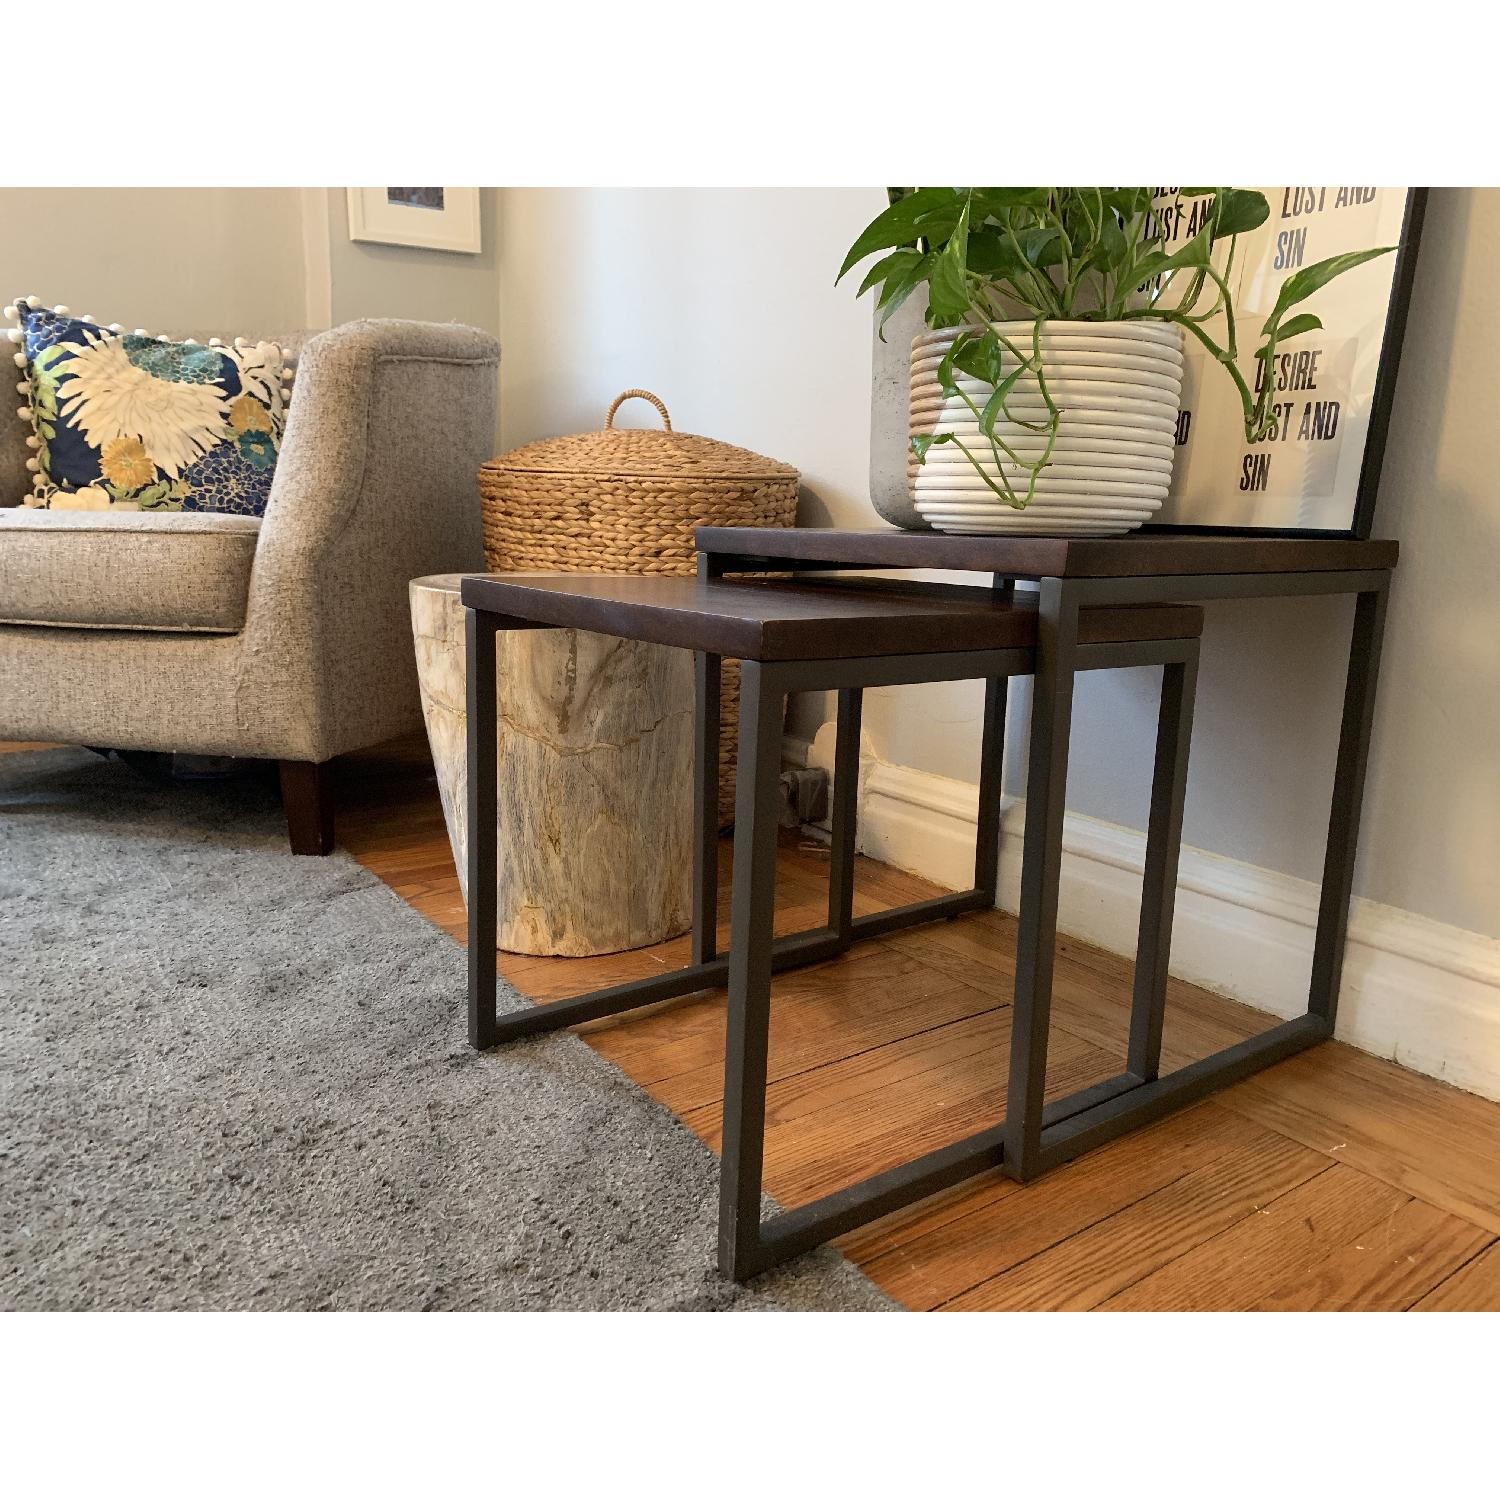 West Elm Box Frame Nesting Tables w/ Wood Top - image-3